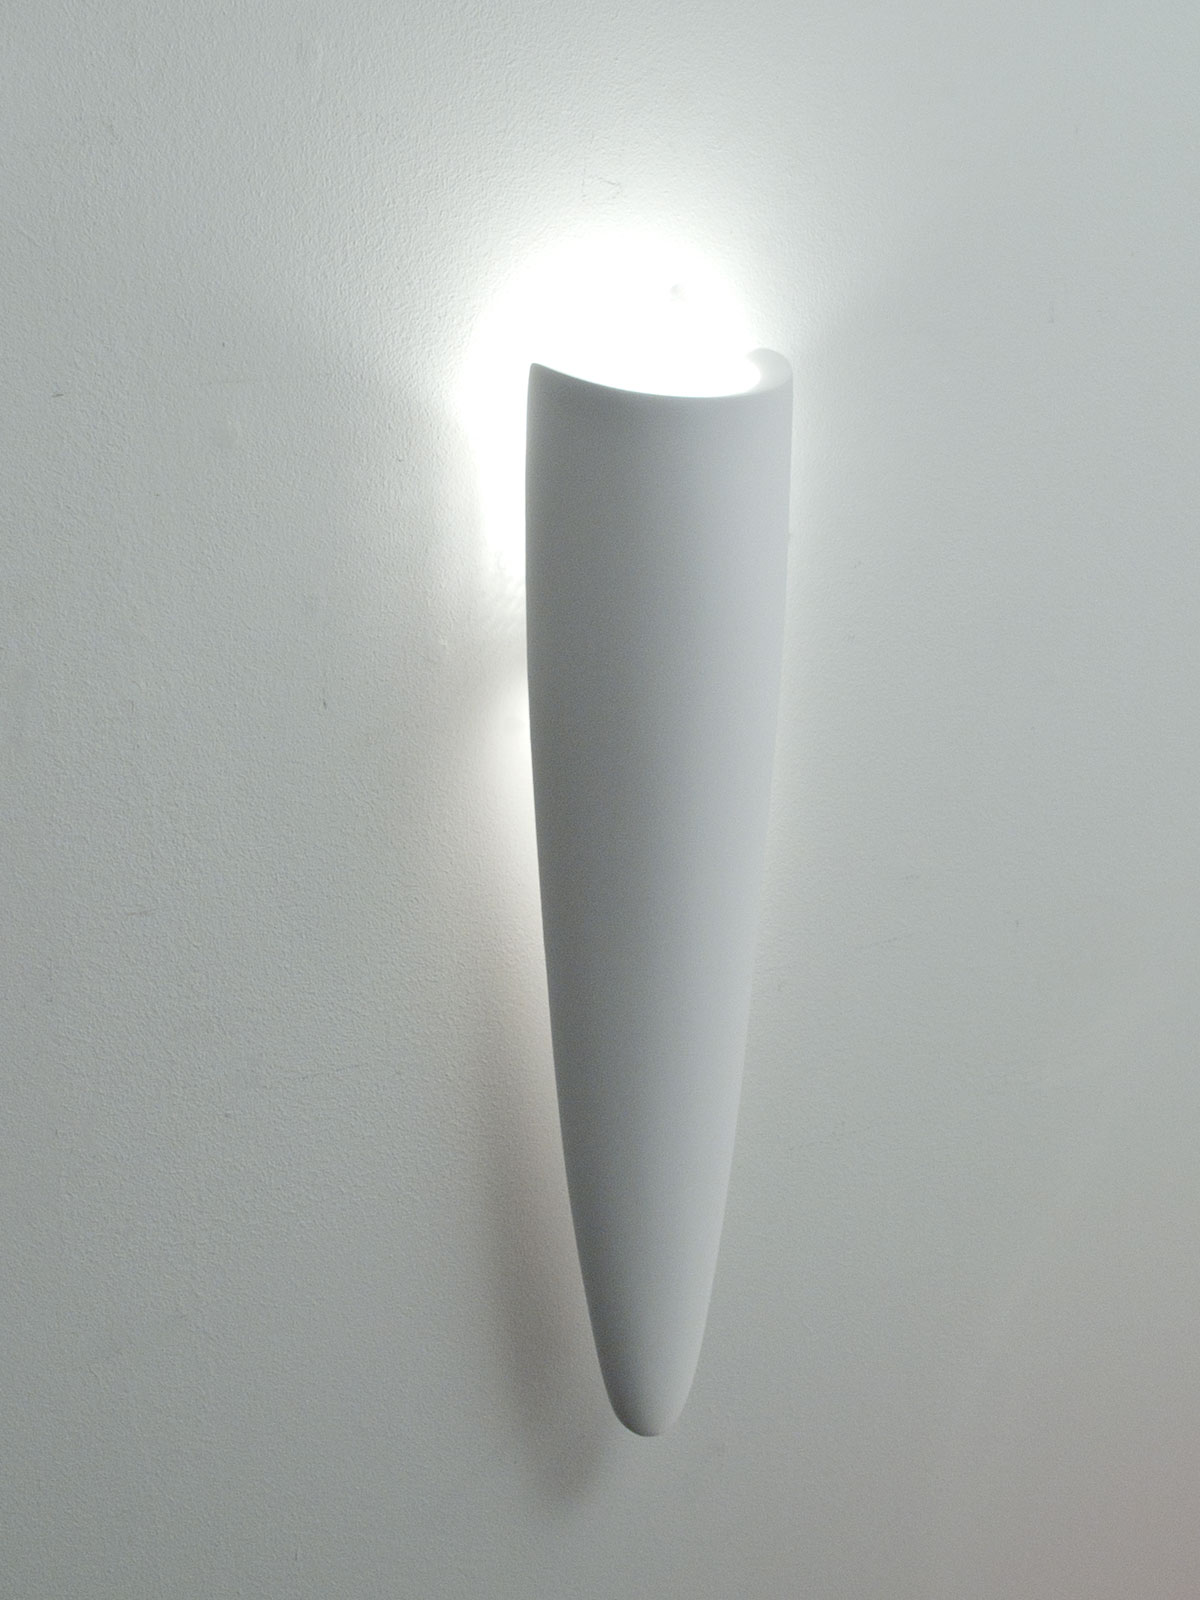 Wall Sconces Plaster : Plaster Wall Scones Joy Studio Design Gallery - Best Design